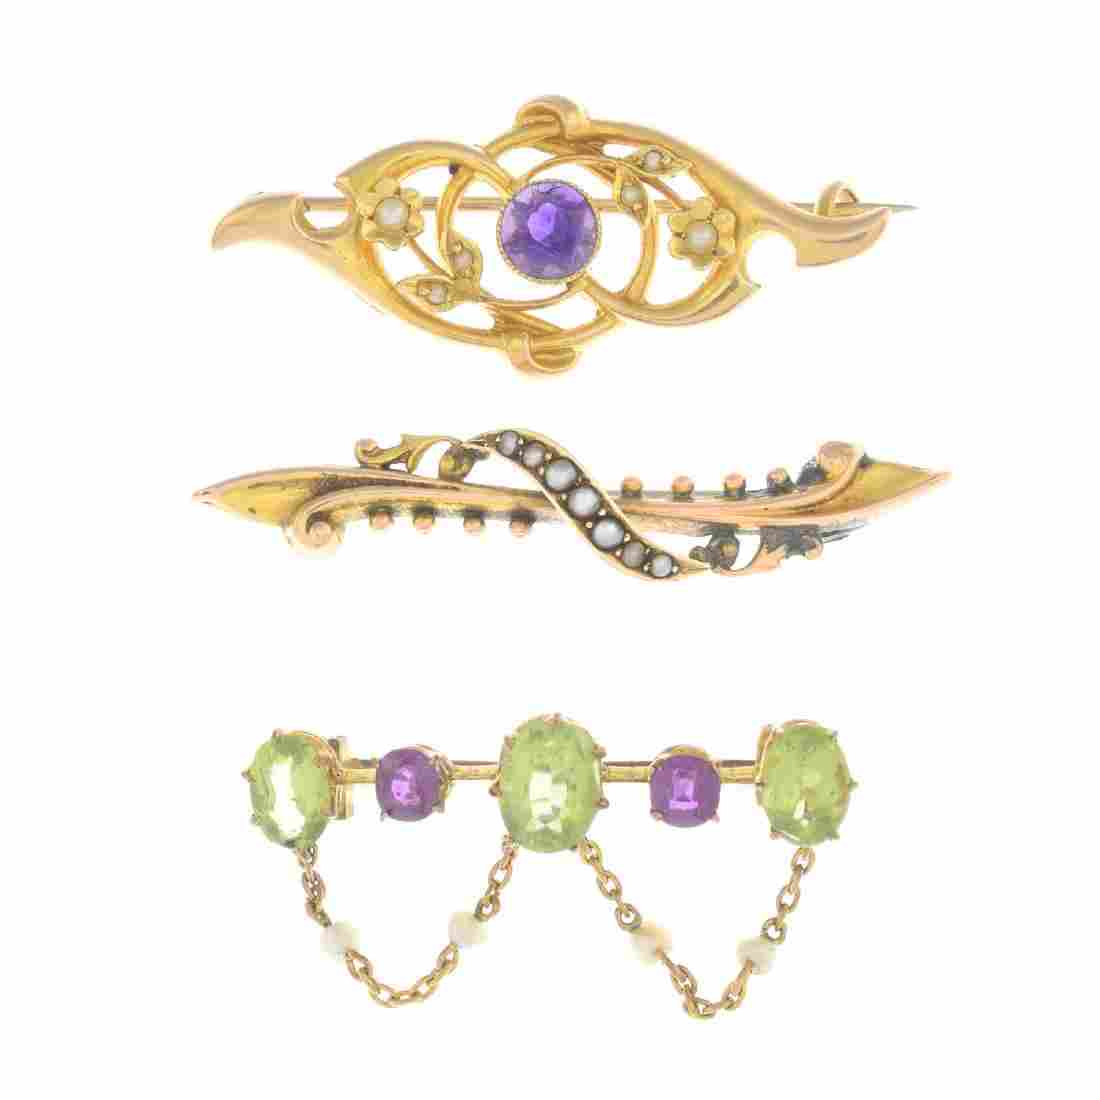 Five early 20th century gold brooches. To include a